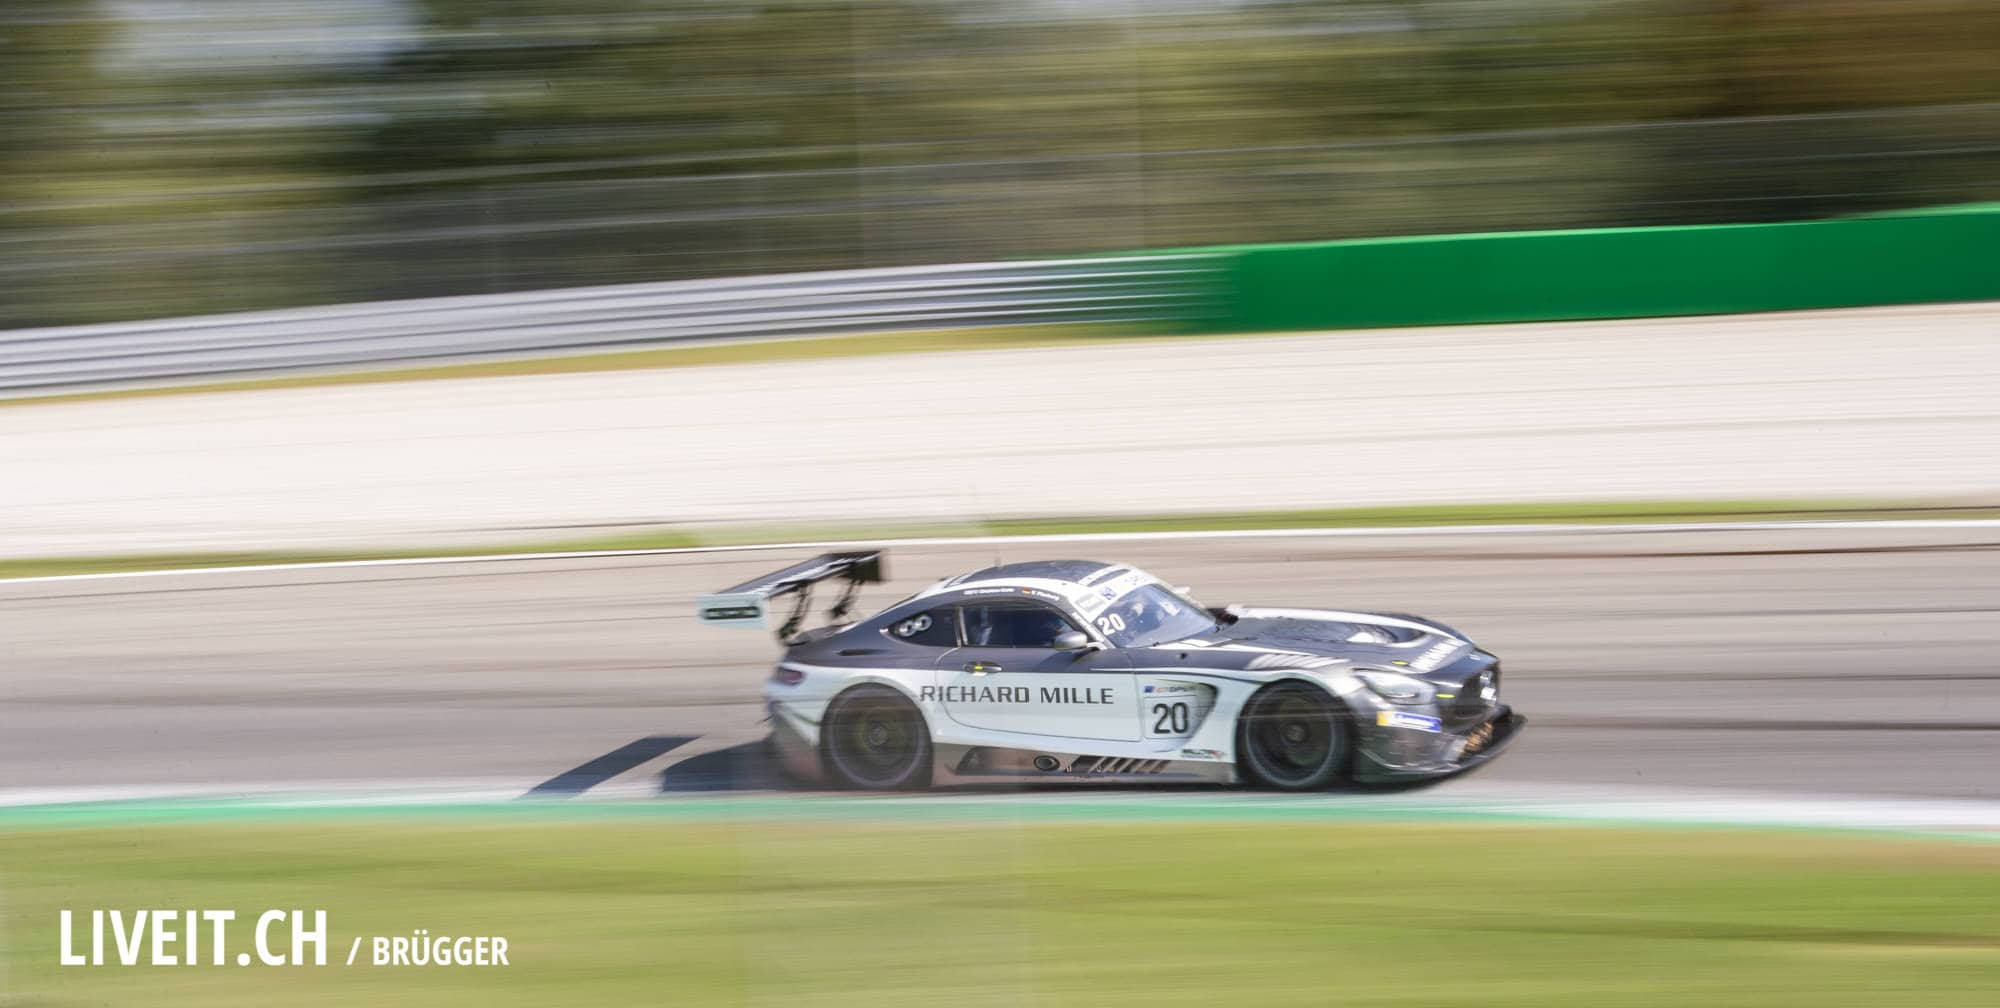 International GT Open, Race 2 am Sonntag 23. September 2018 in Monza (Fotografiert von Dominic Bruegger für liveit.ch)